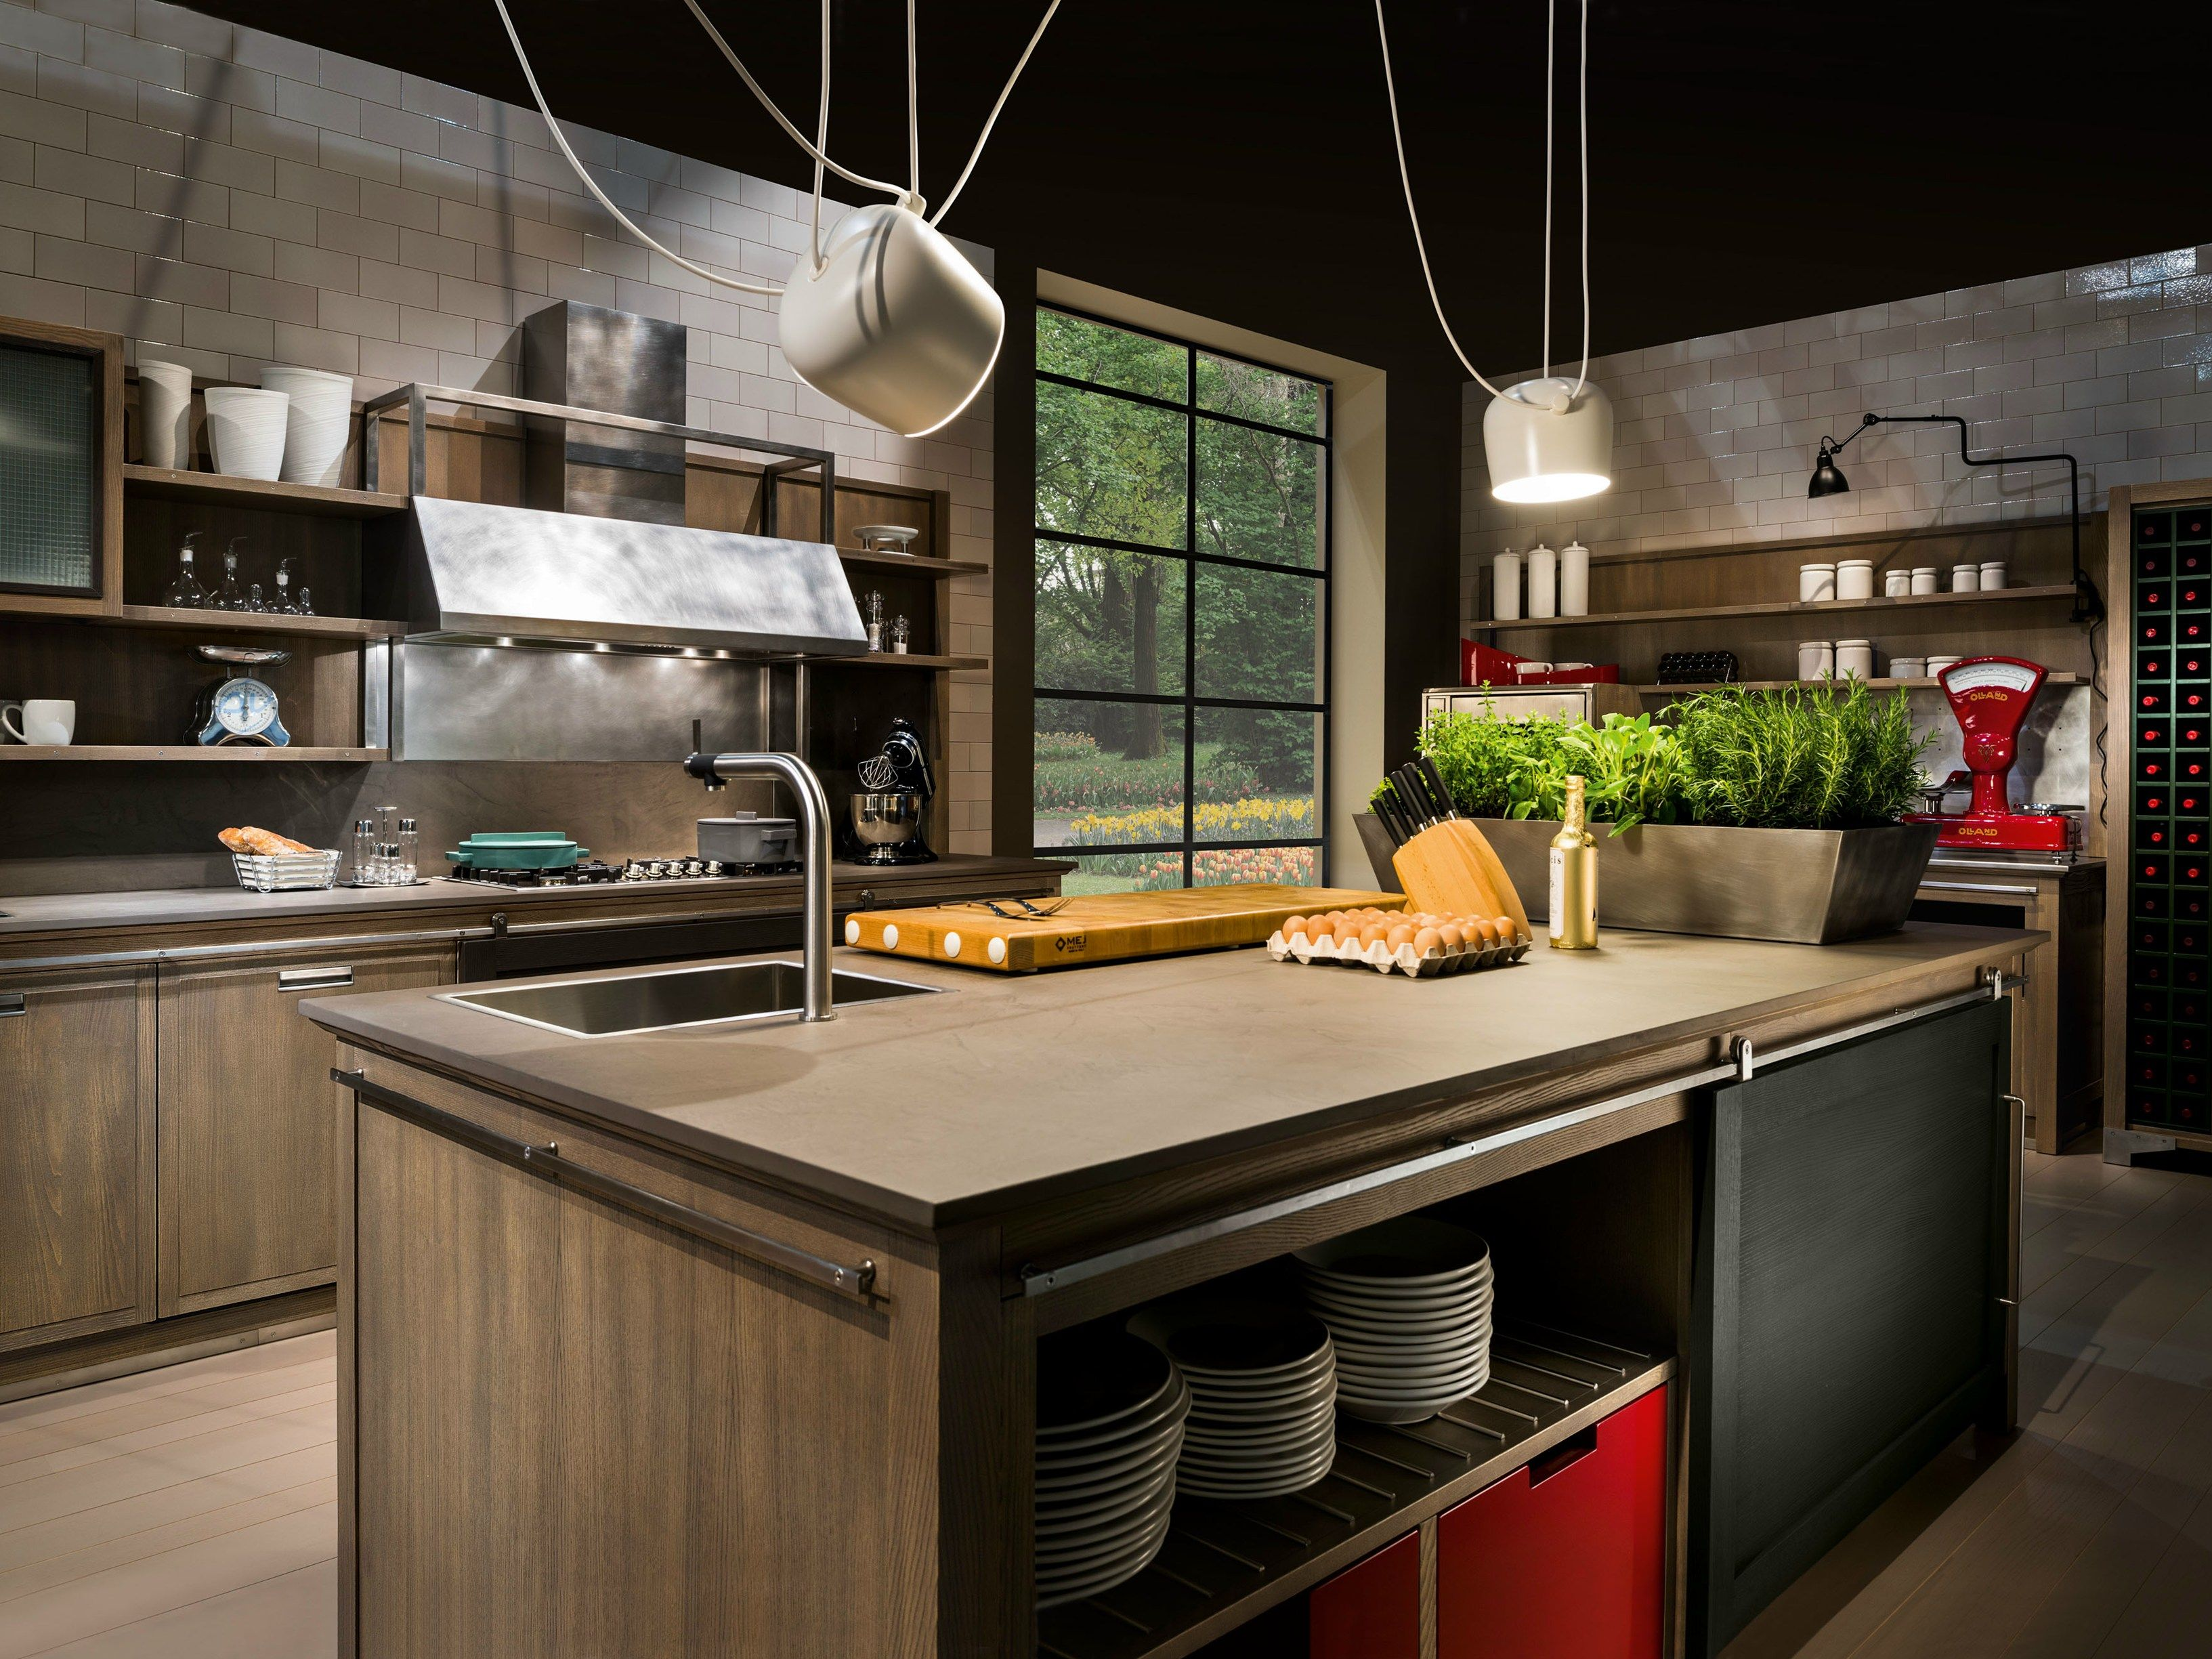 Cucina in frassino con isola INDUSTRIAL CHIC by L\'Ottocento | houses ...